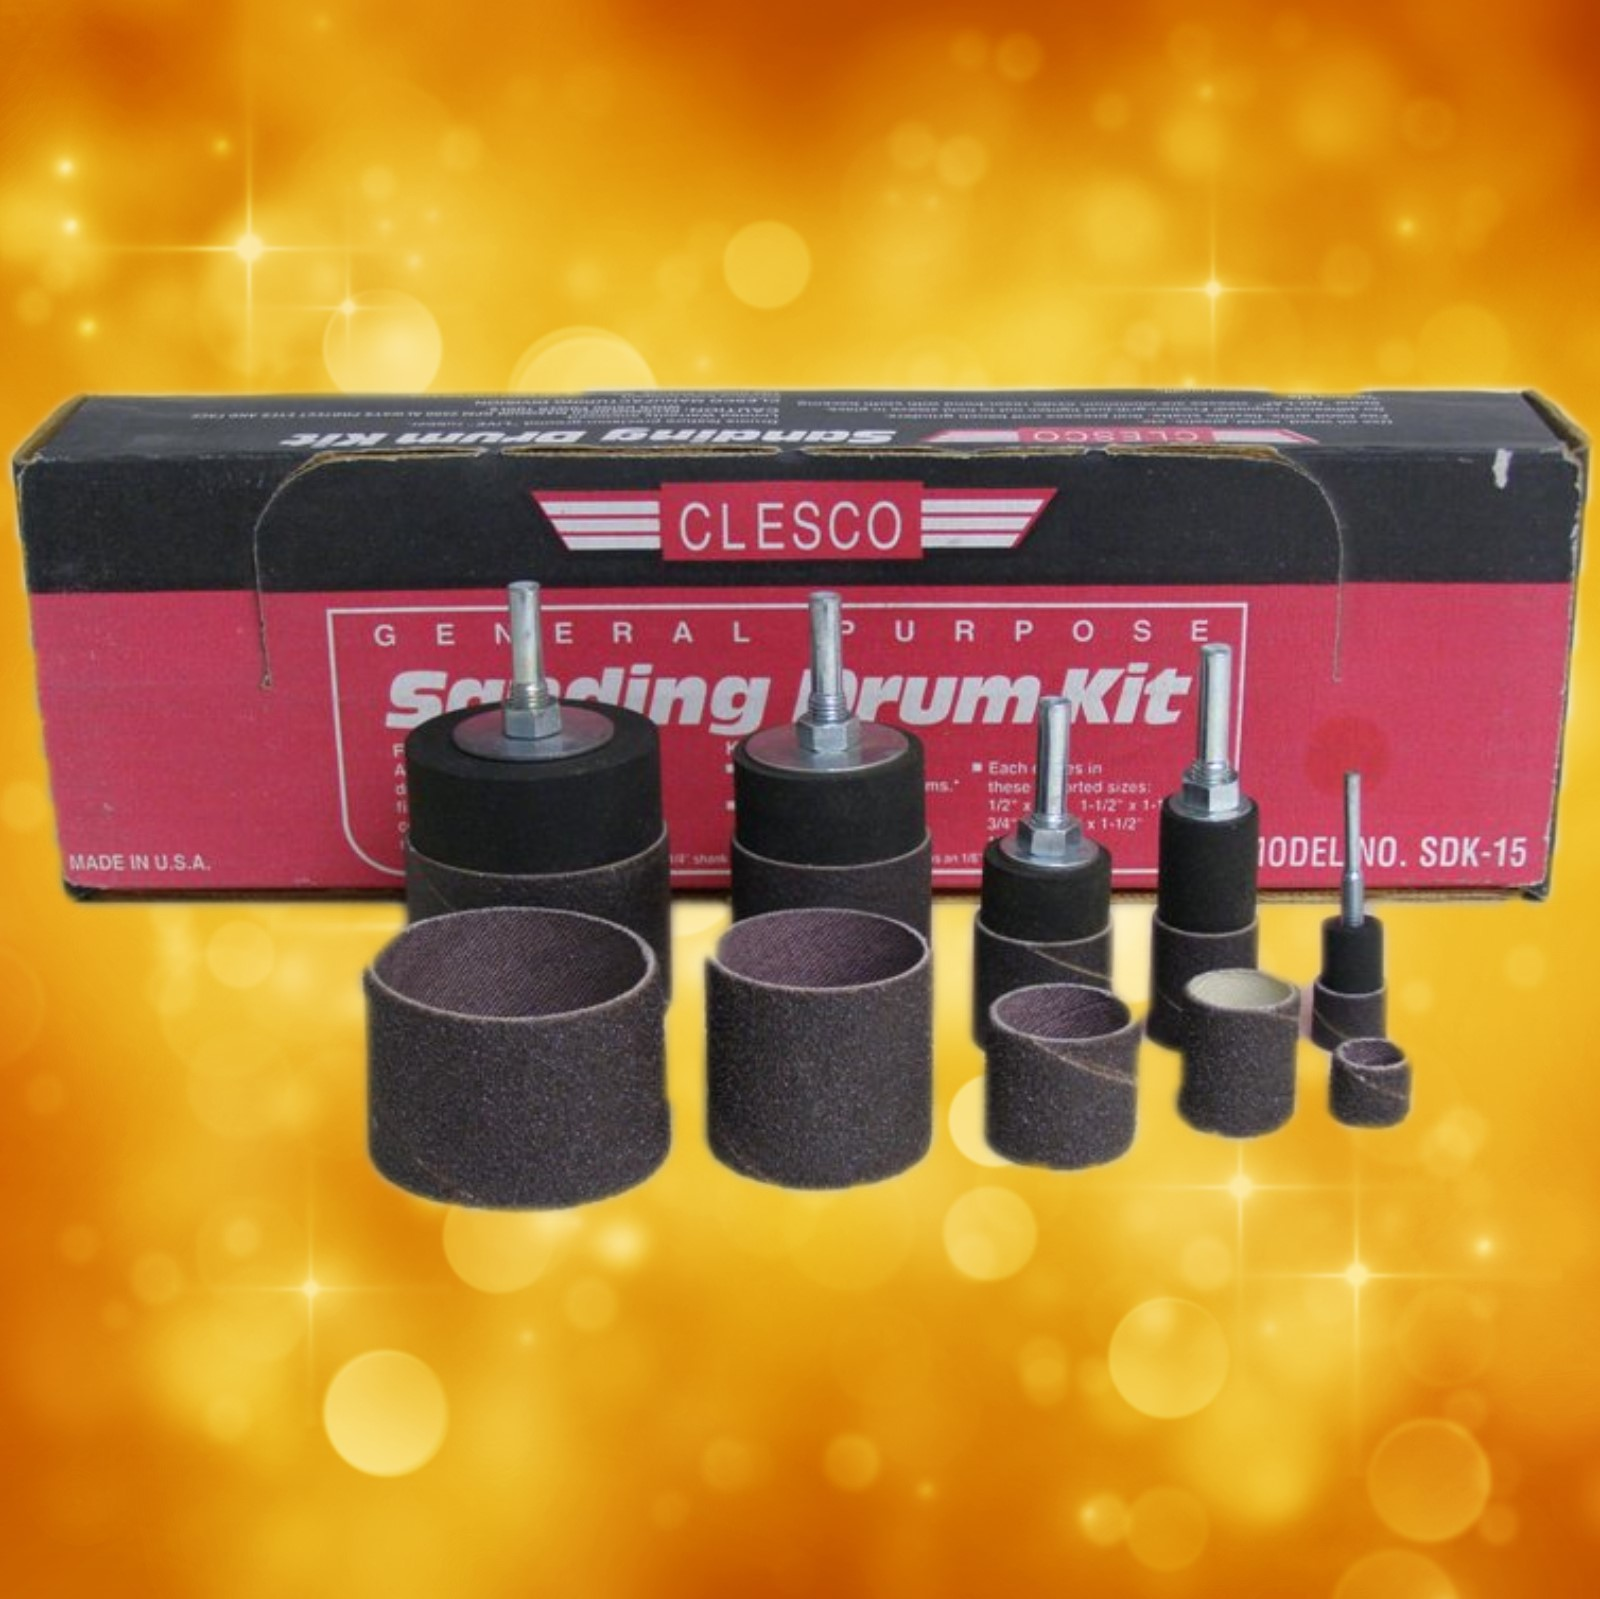 Clesco Sanding Drum Kit 210-0900 210-0900